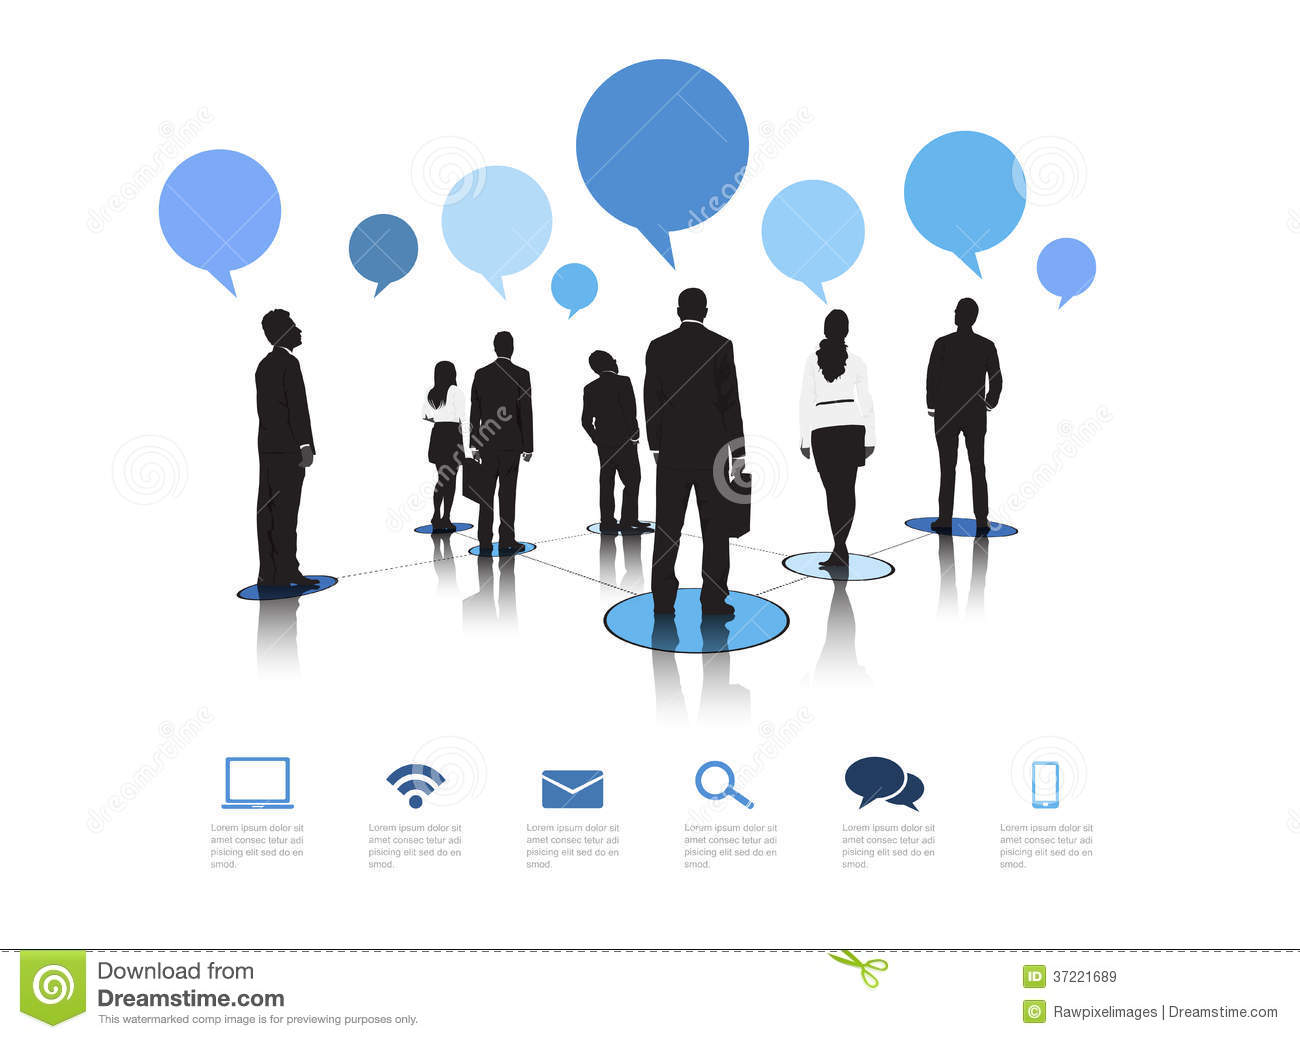 speech social networking in hindi Startseite trailerpark social networking websites: a short essay using thelwall's definition, a social networking site is a web server that allows internet users to register, to create a personal profile and communicate with selected others.